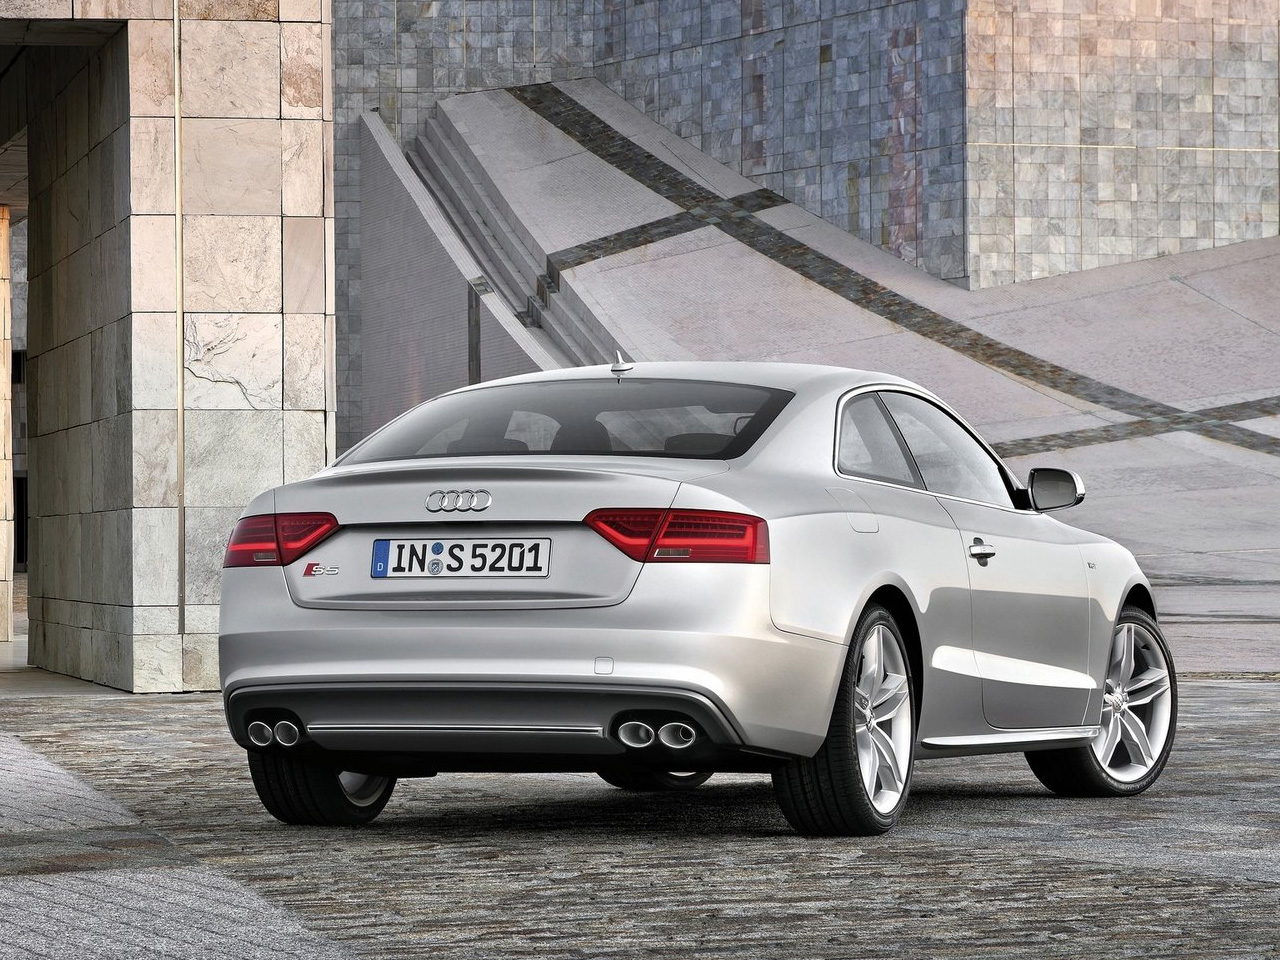 2012 audi s5 sportback rear angle 1 Car Pictures